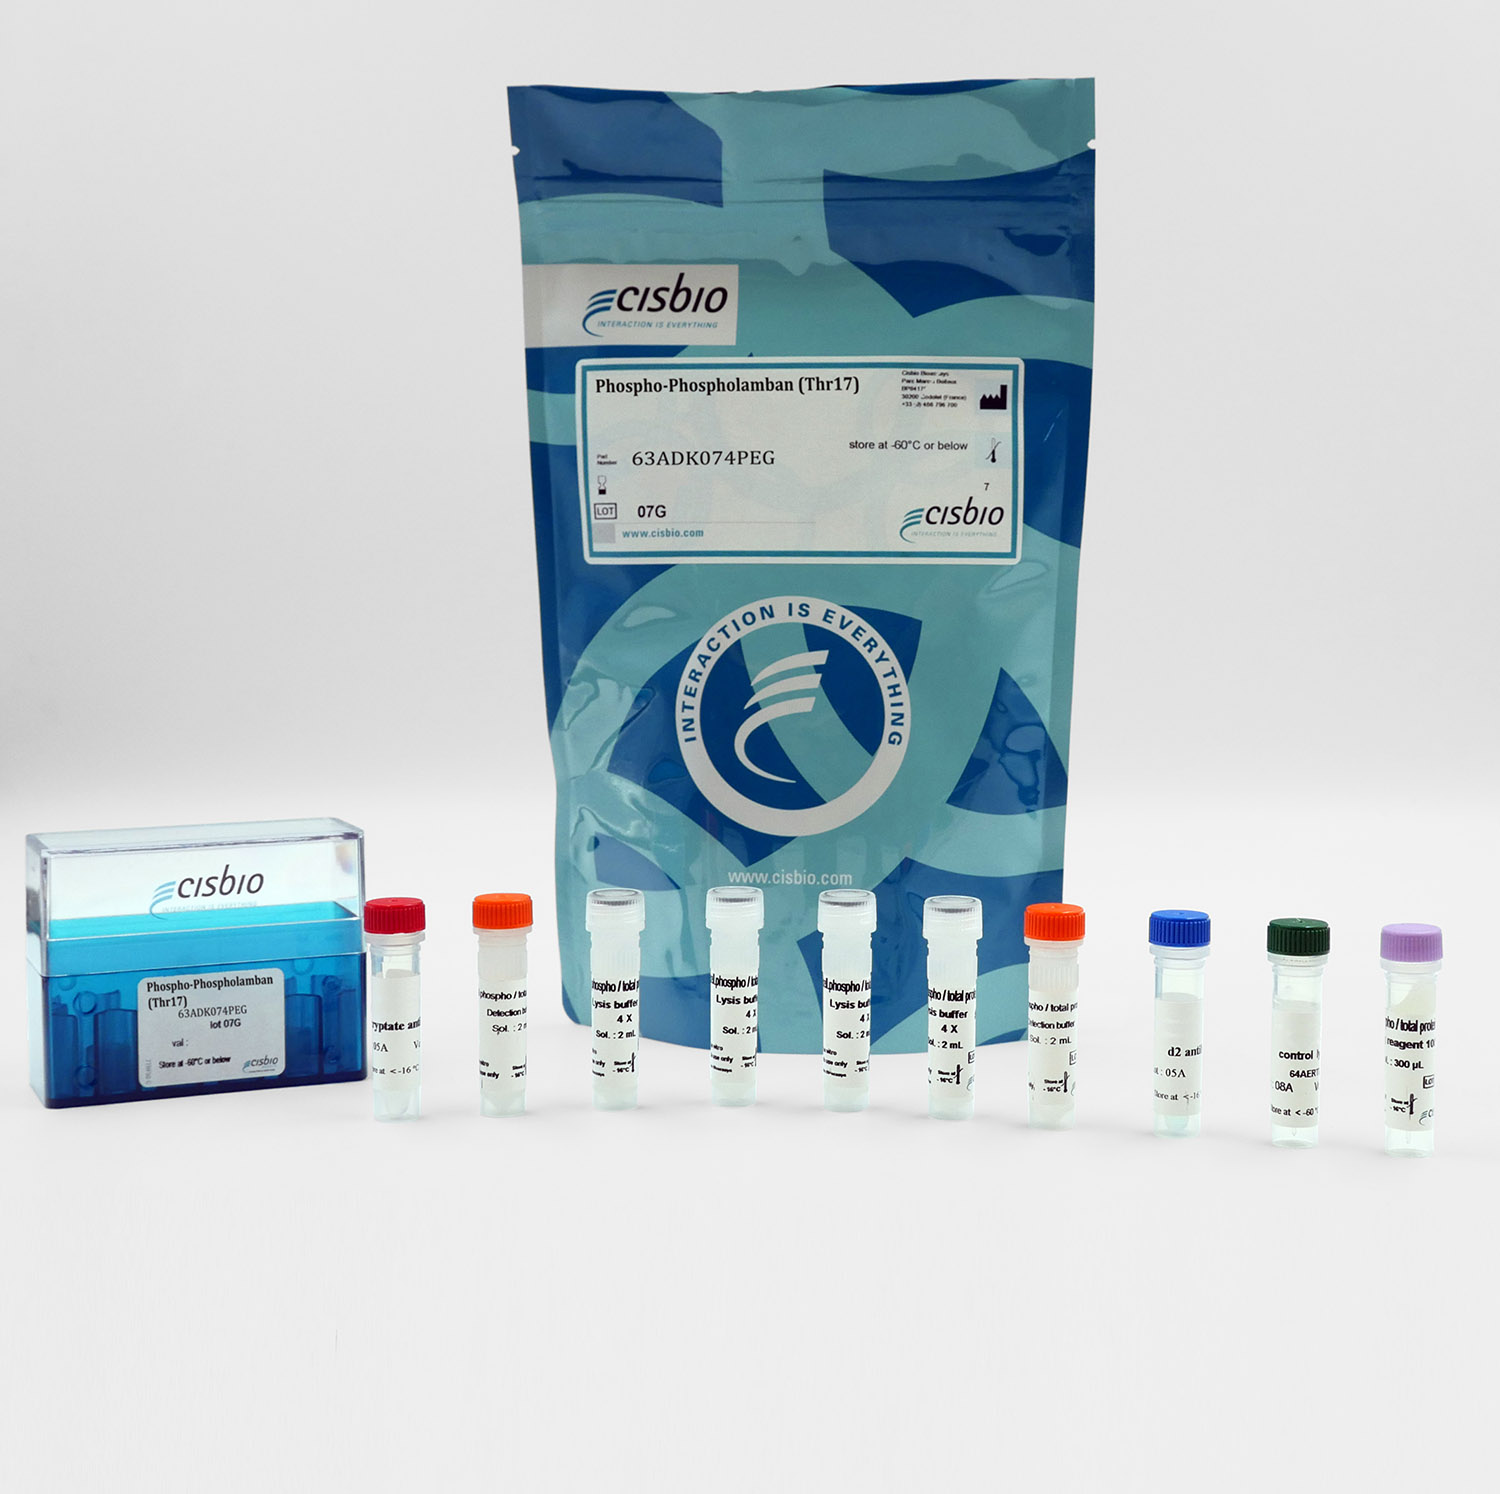 Phospho-Phospholamban (Thr17) cellular kit